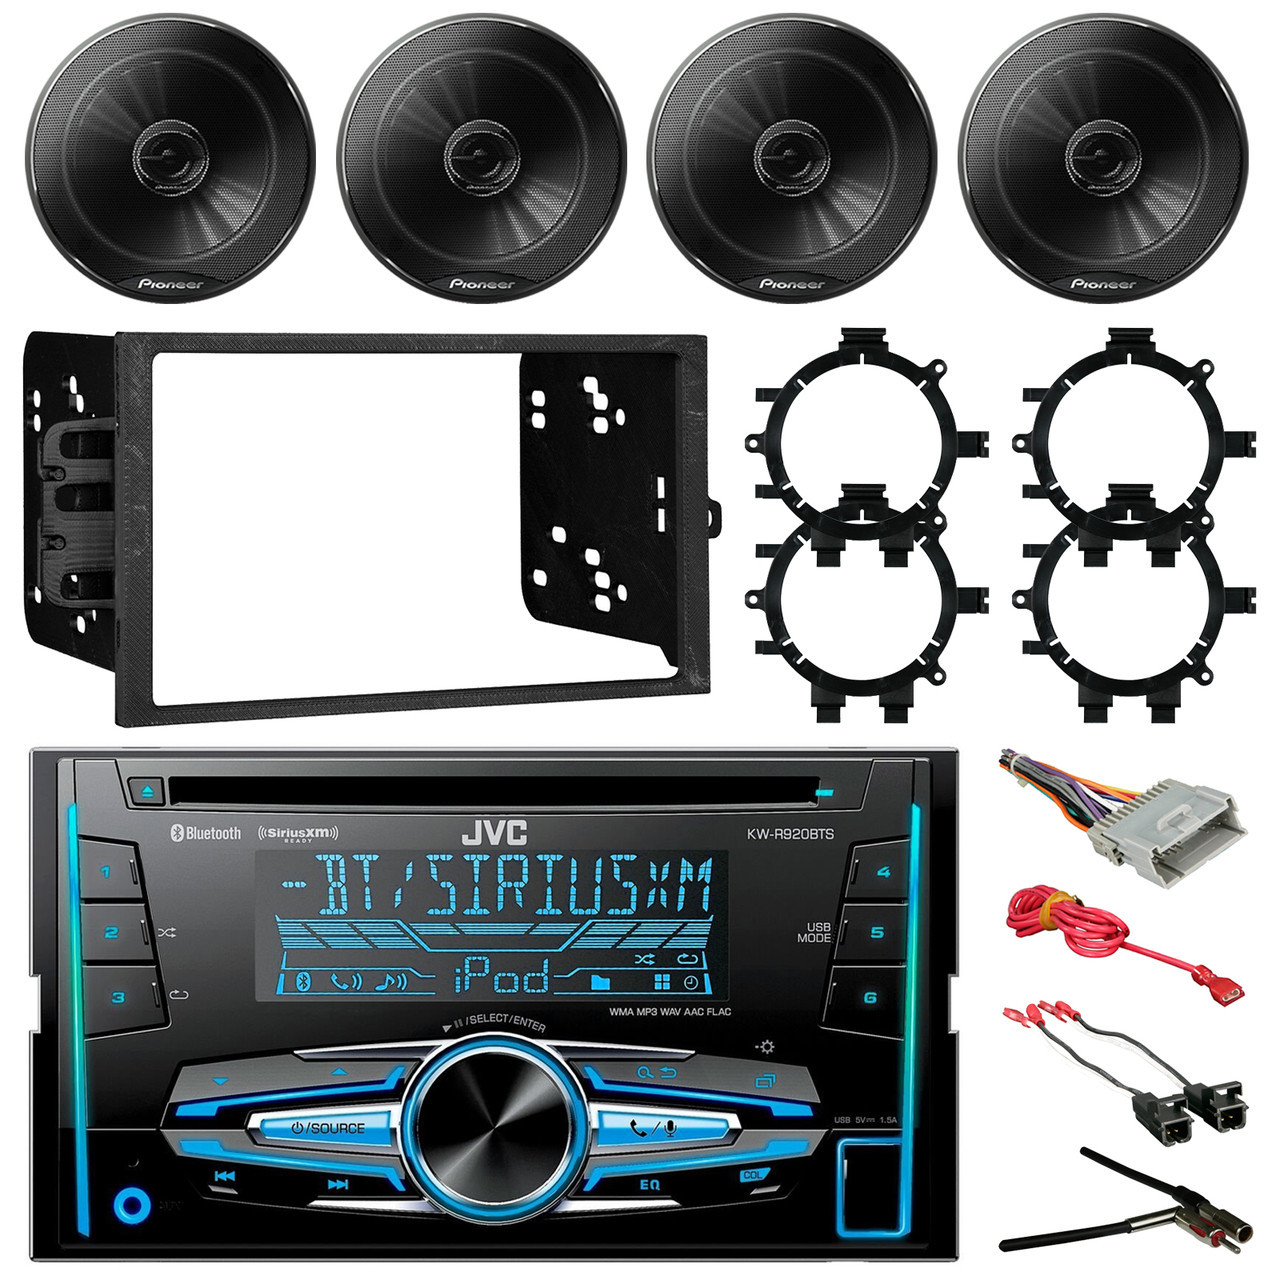 small resolution of jvc kw r920bts double din bluetooth car cd player stereo receiver bundle combo with 4x 6 5 inch 250w coaxial speakers w brackets 4x wiring harness